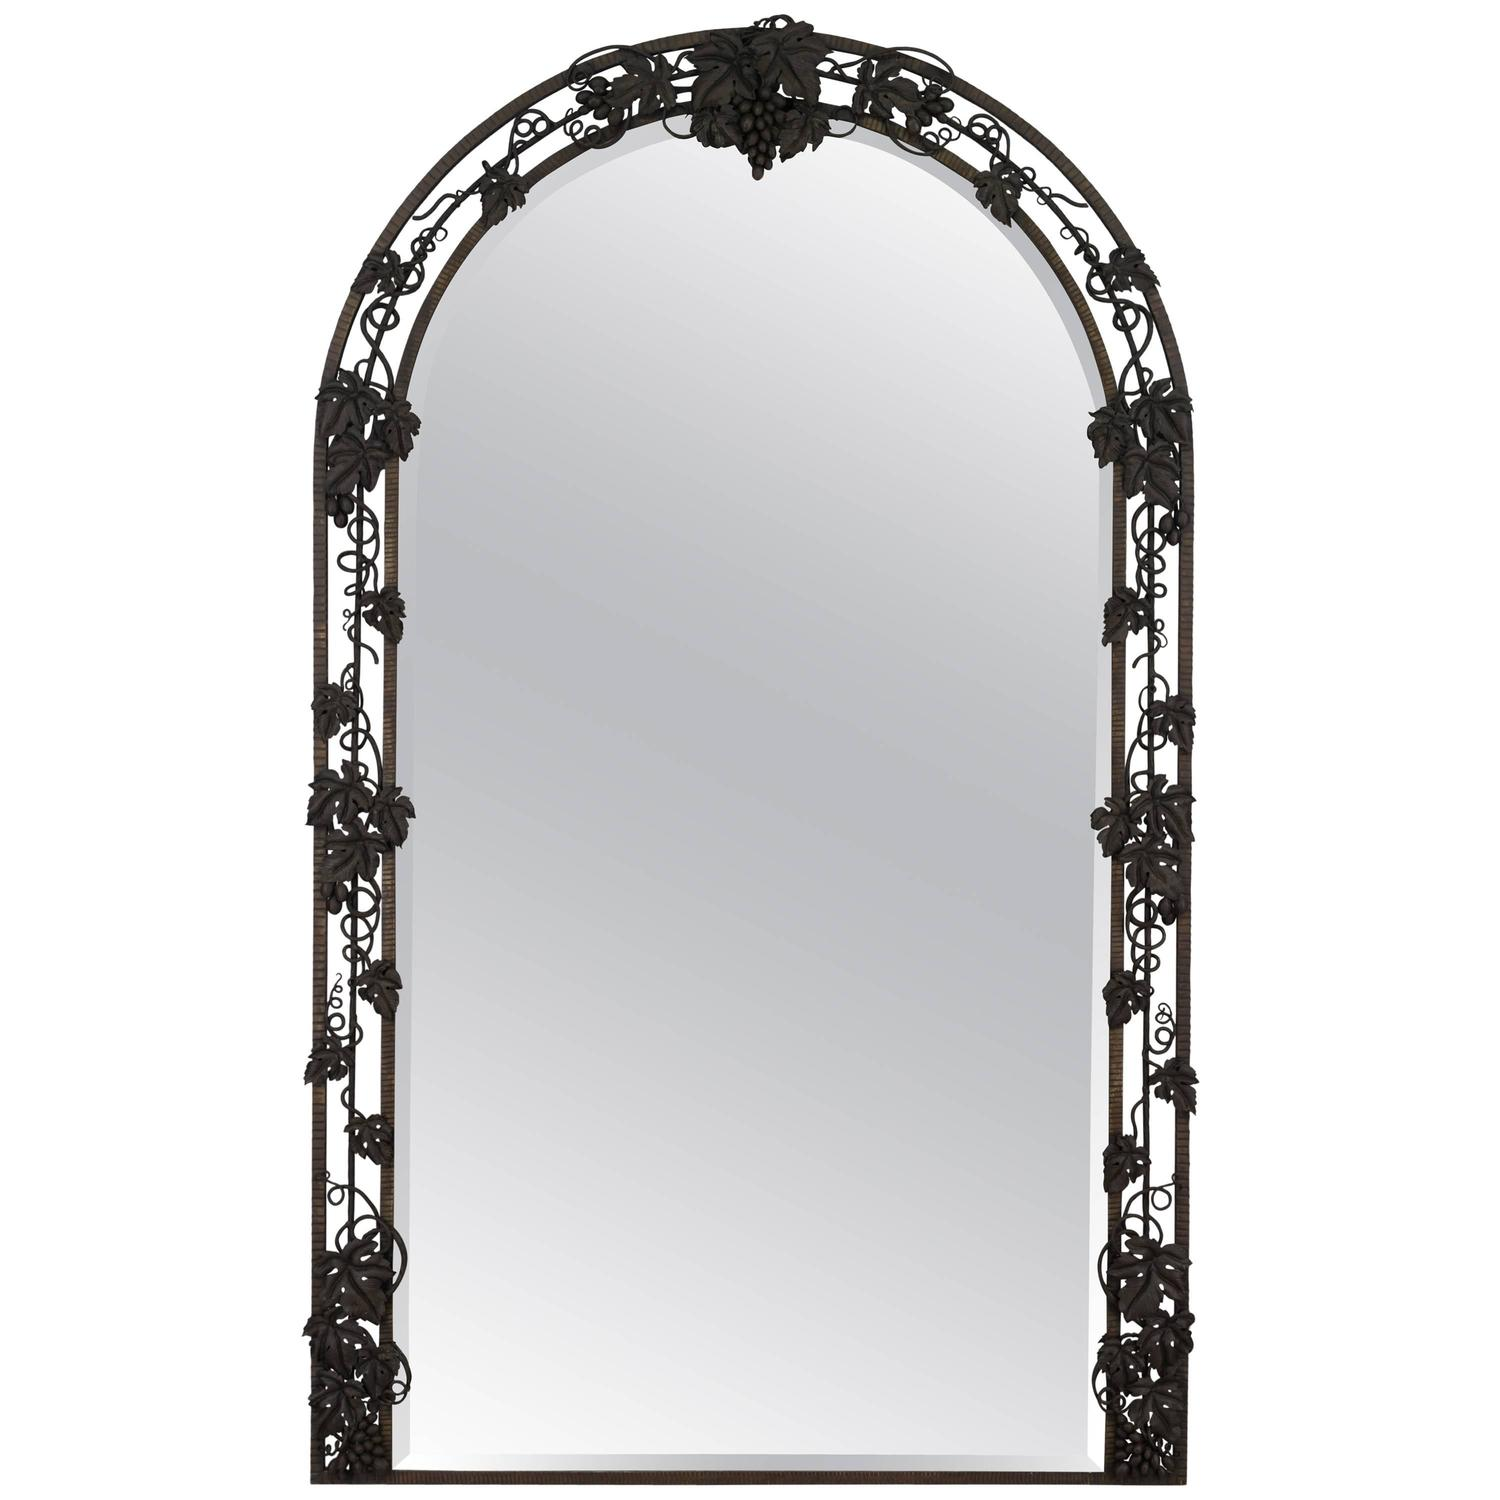 French wrought iron mirror for sale at 1stdibs for Wrought iron mirror